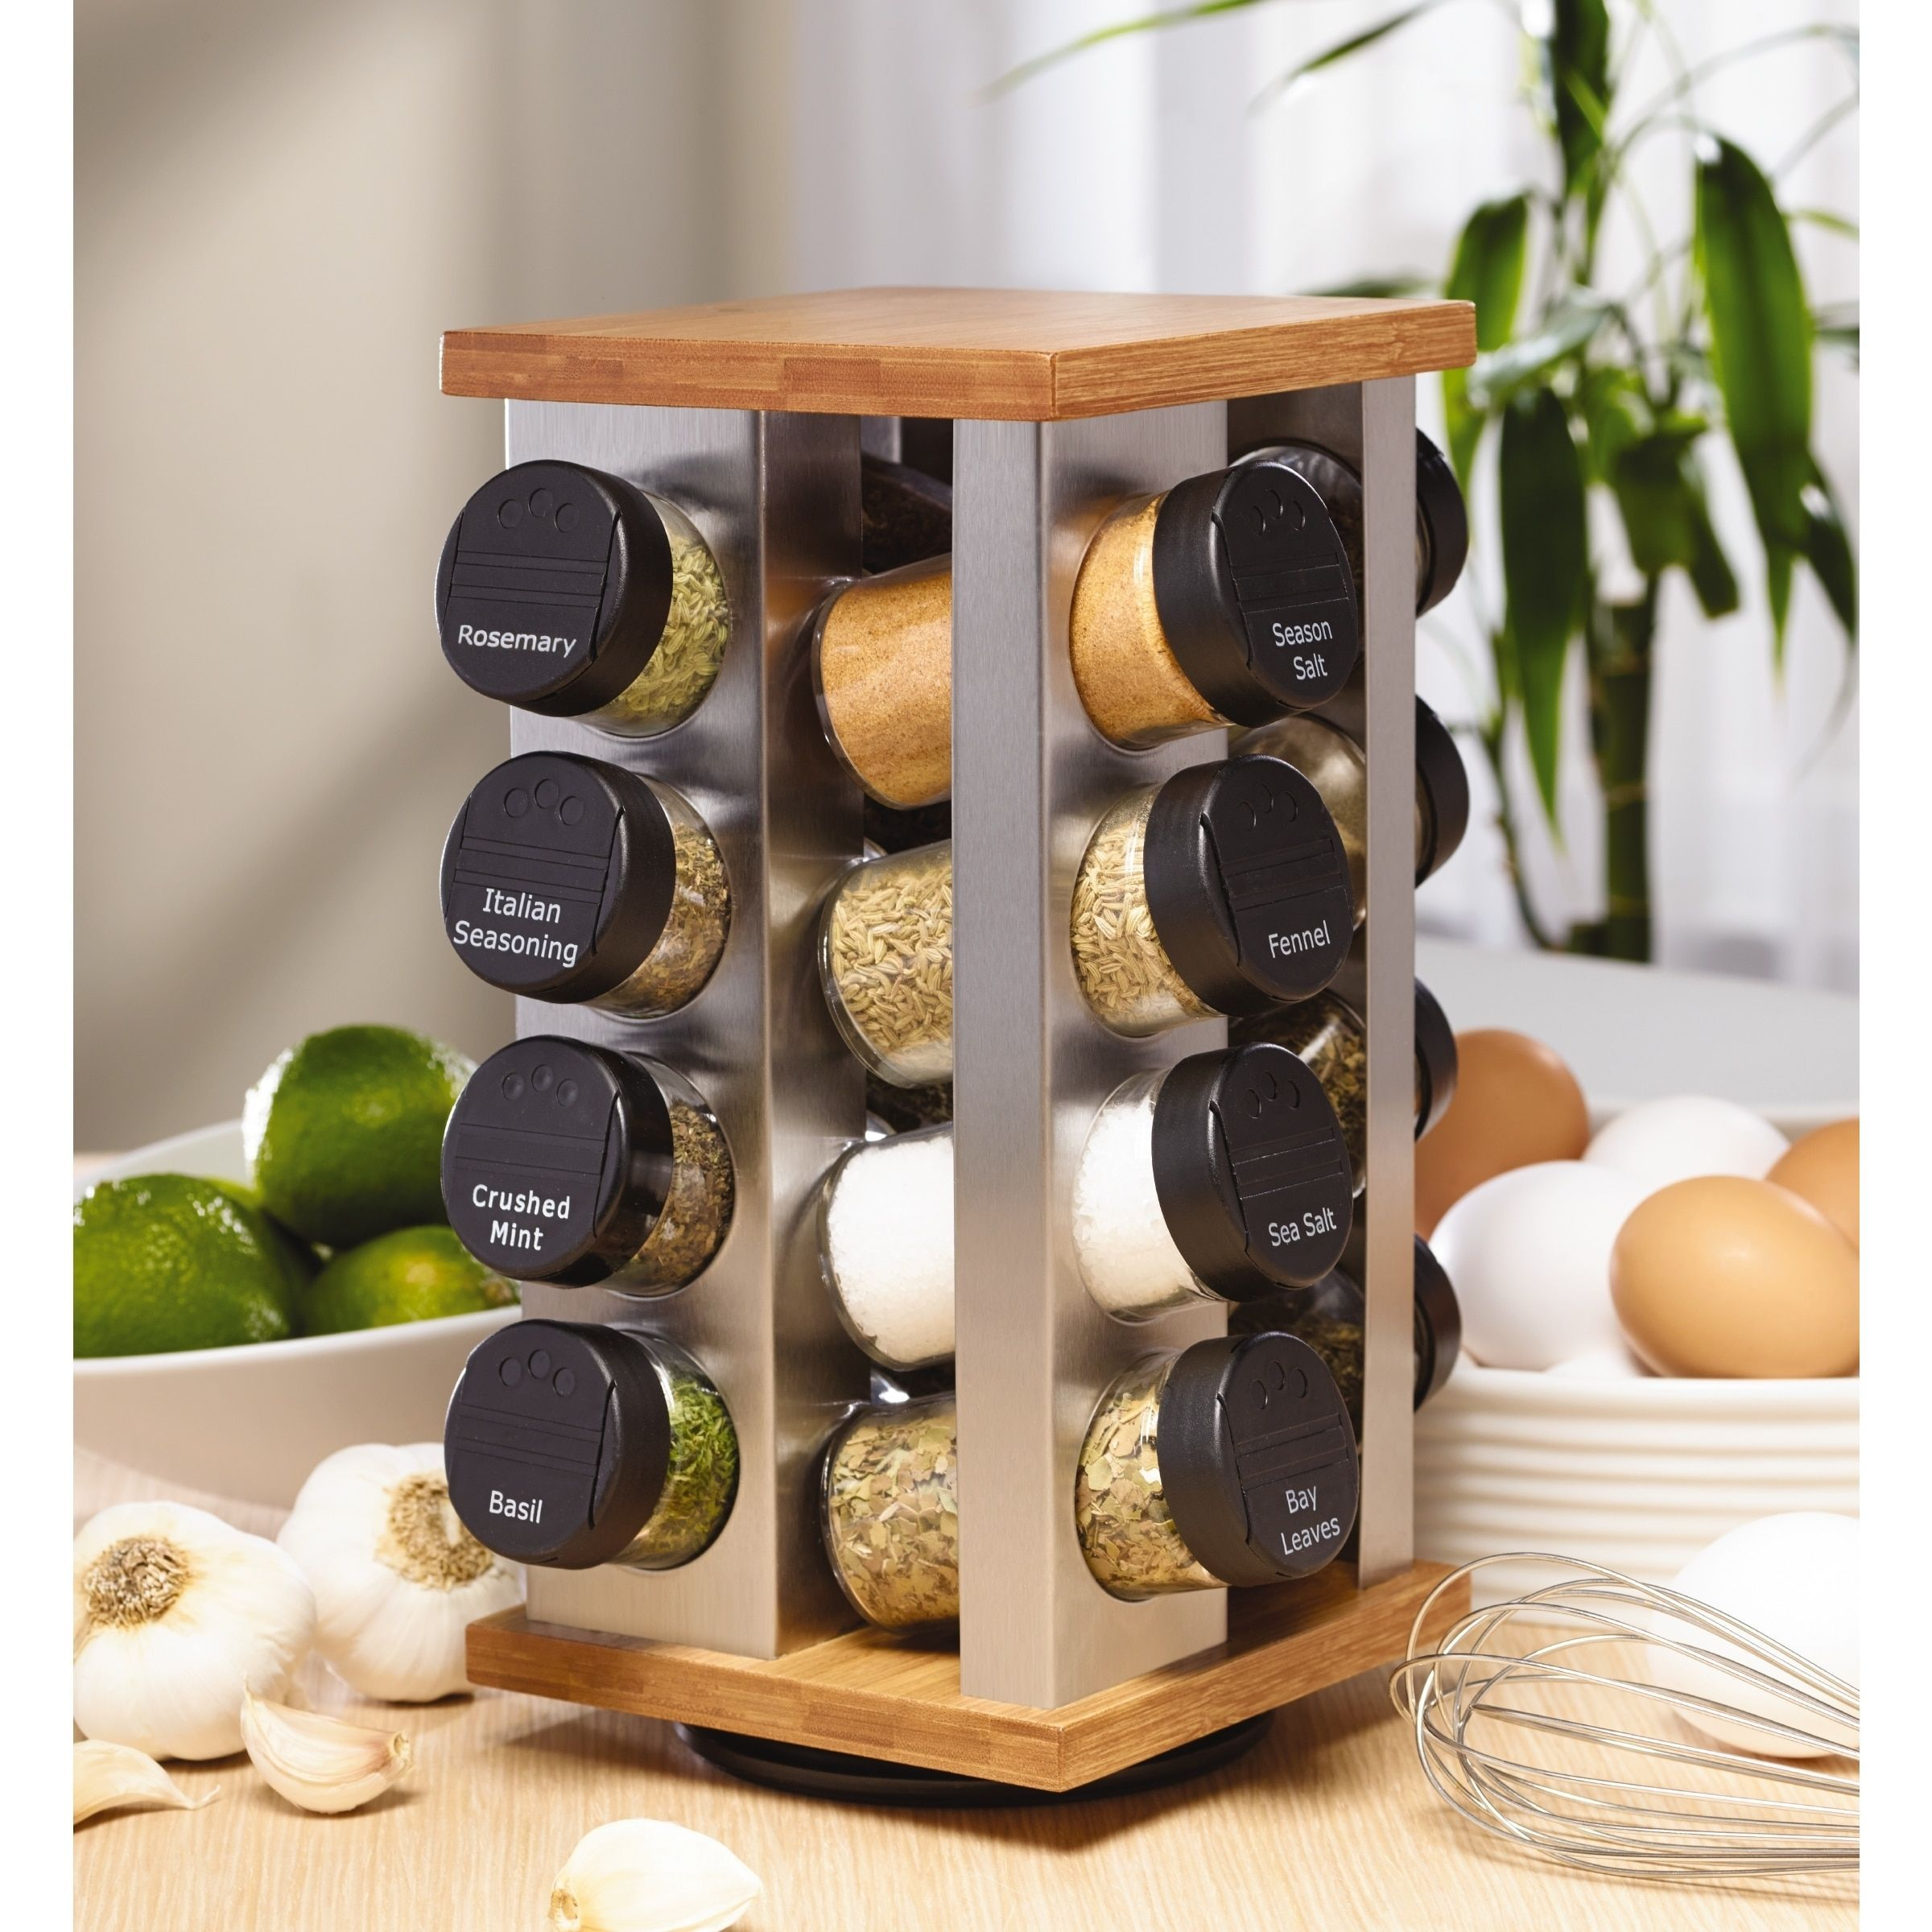 Charming Explore Revolving Spice Rack And More!